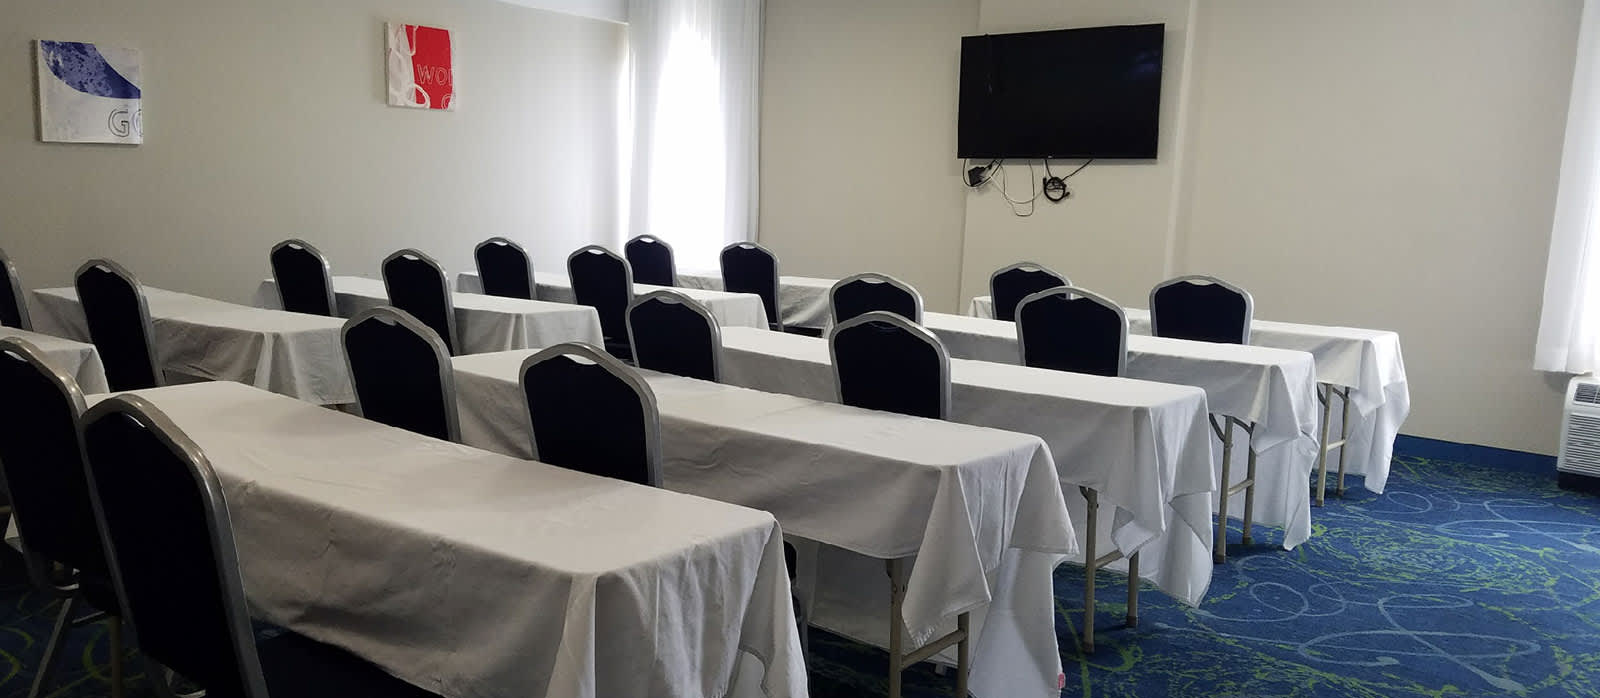 Meetings Facilities at Allentown Hotel, Pennsylvania